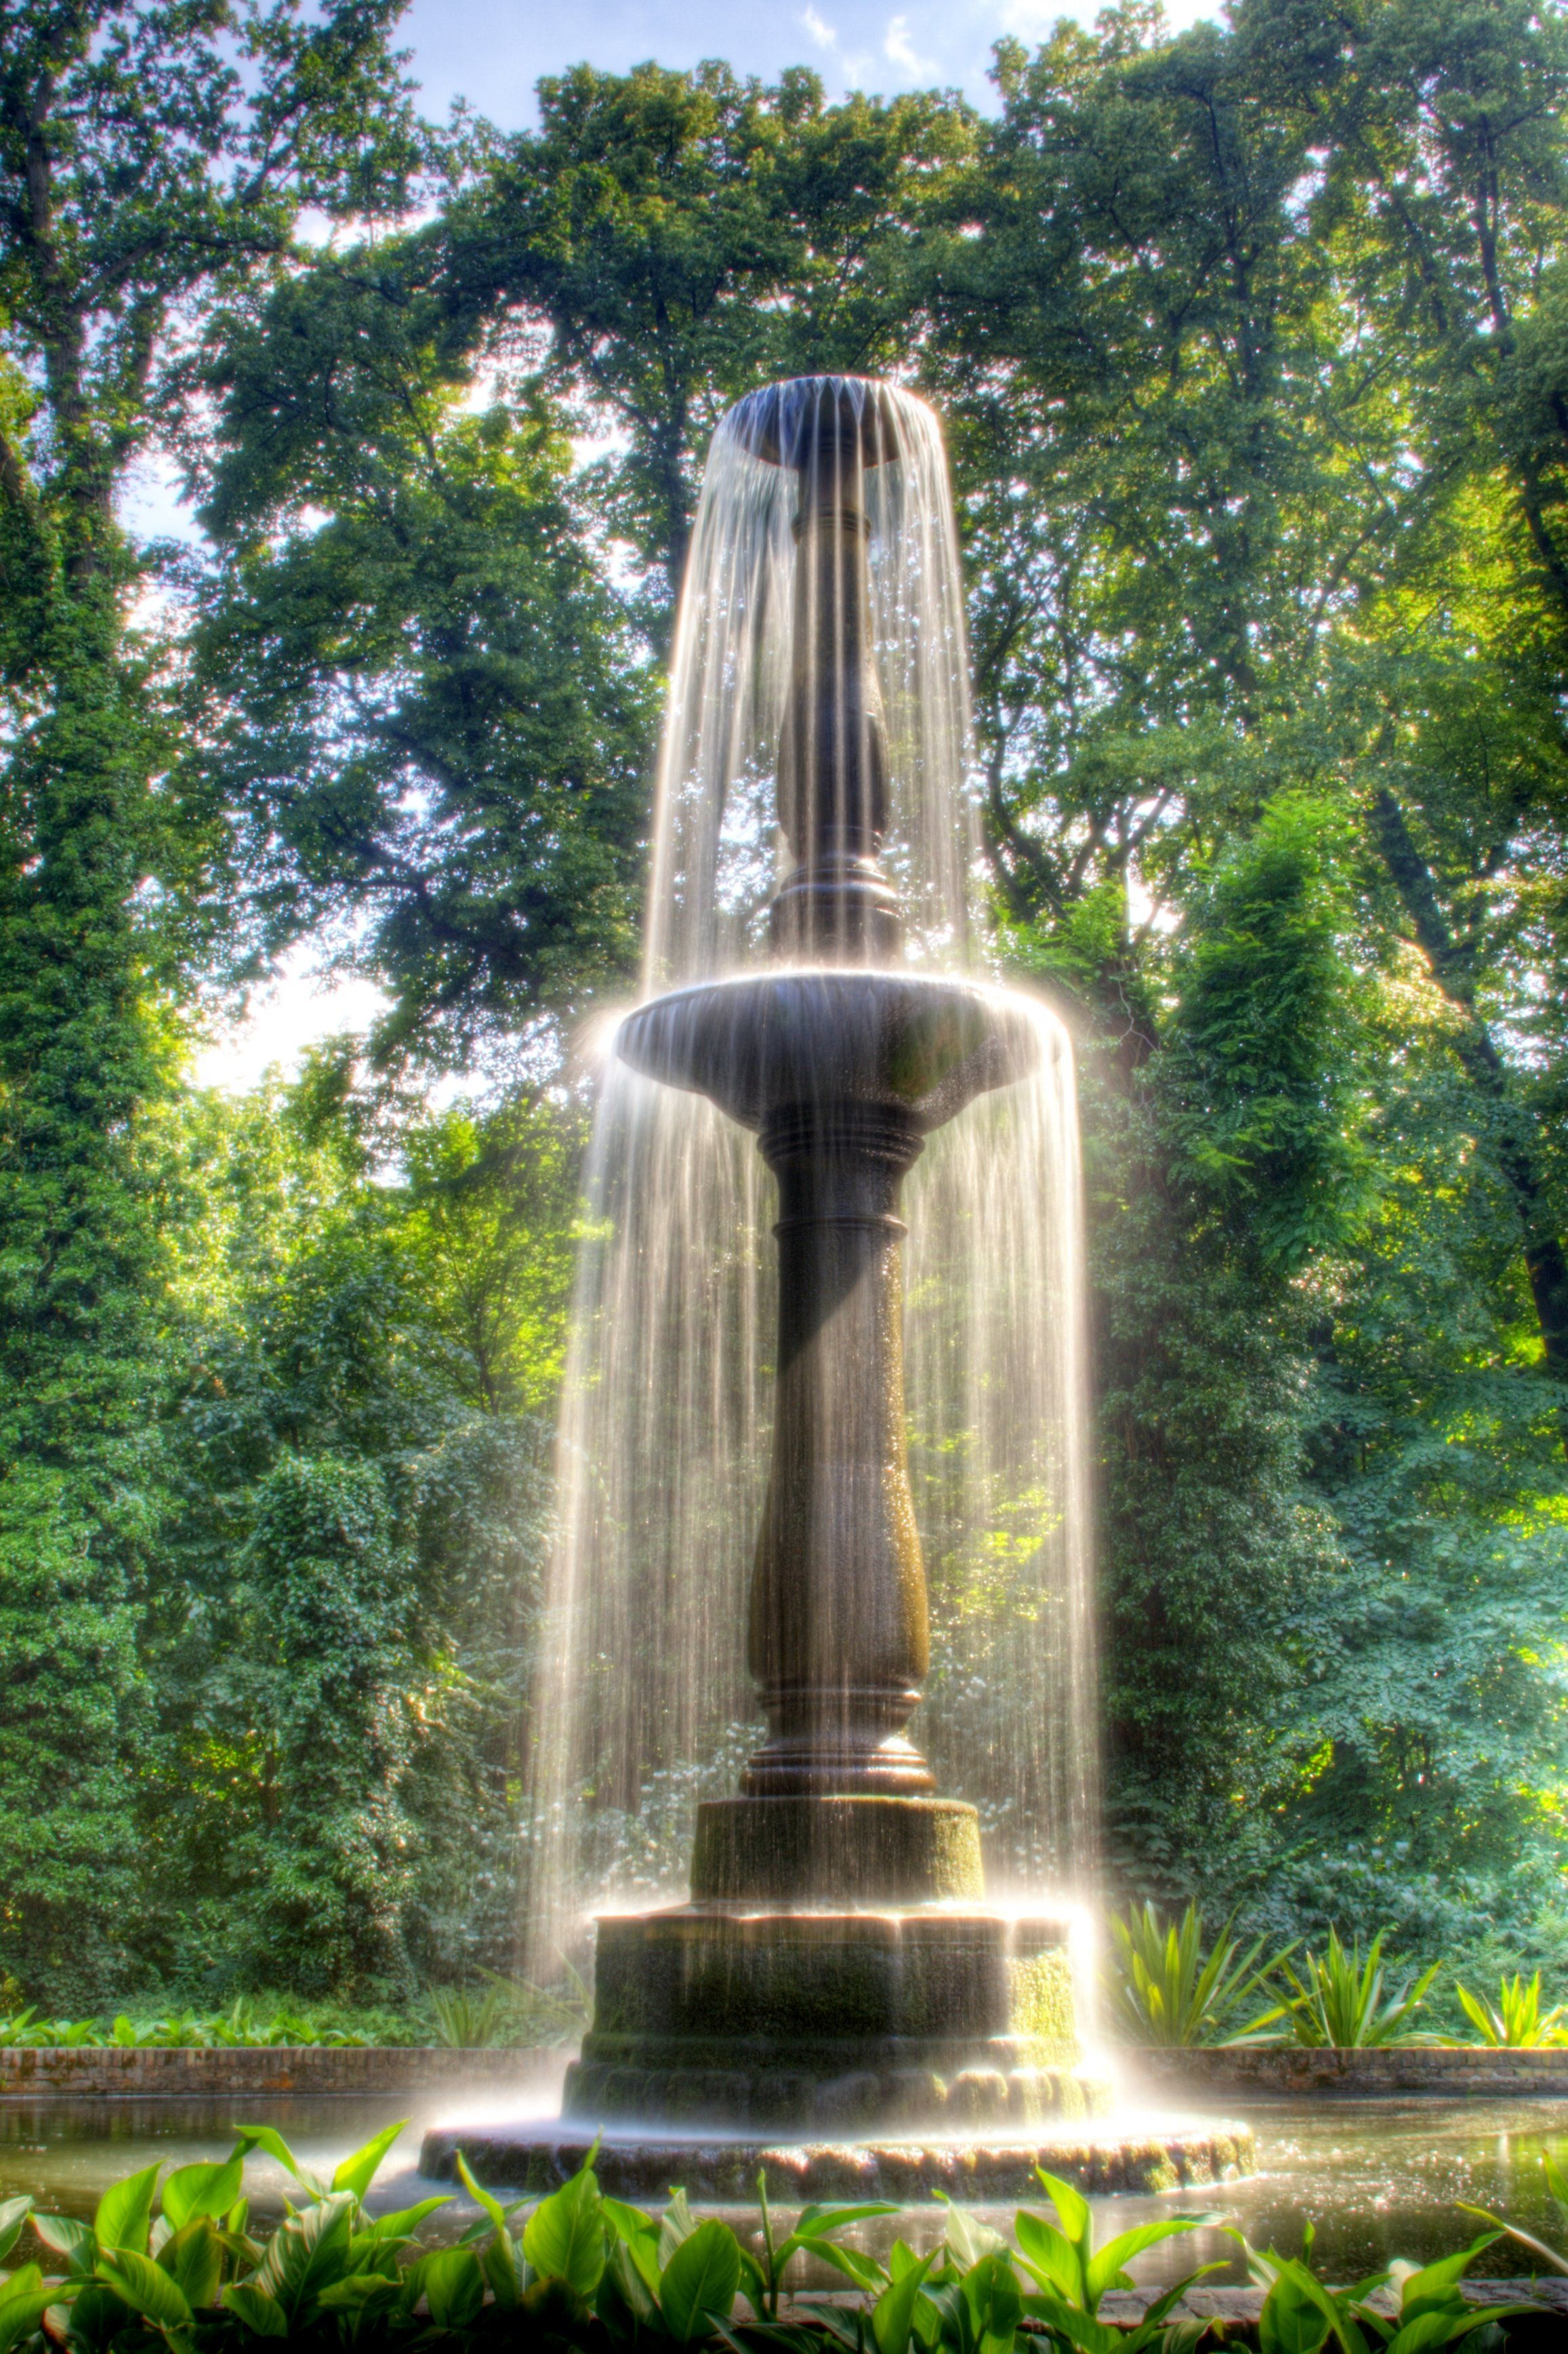 last night i dreamed of a fountain